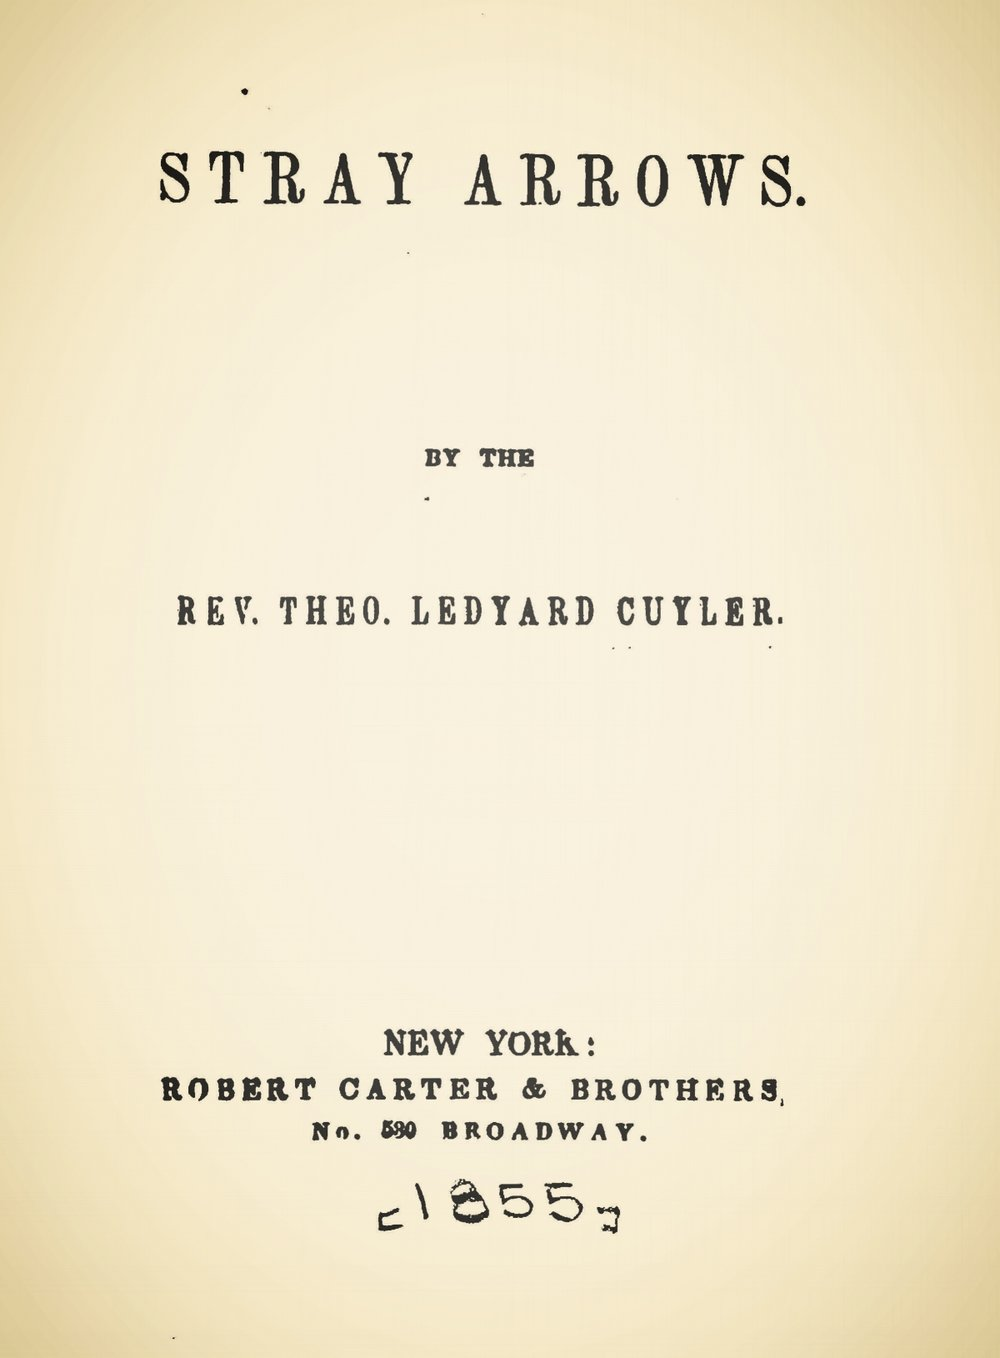 Cuyler, Theodore Ledyard, Stray Arrows Title Page.jpg